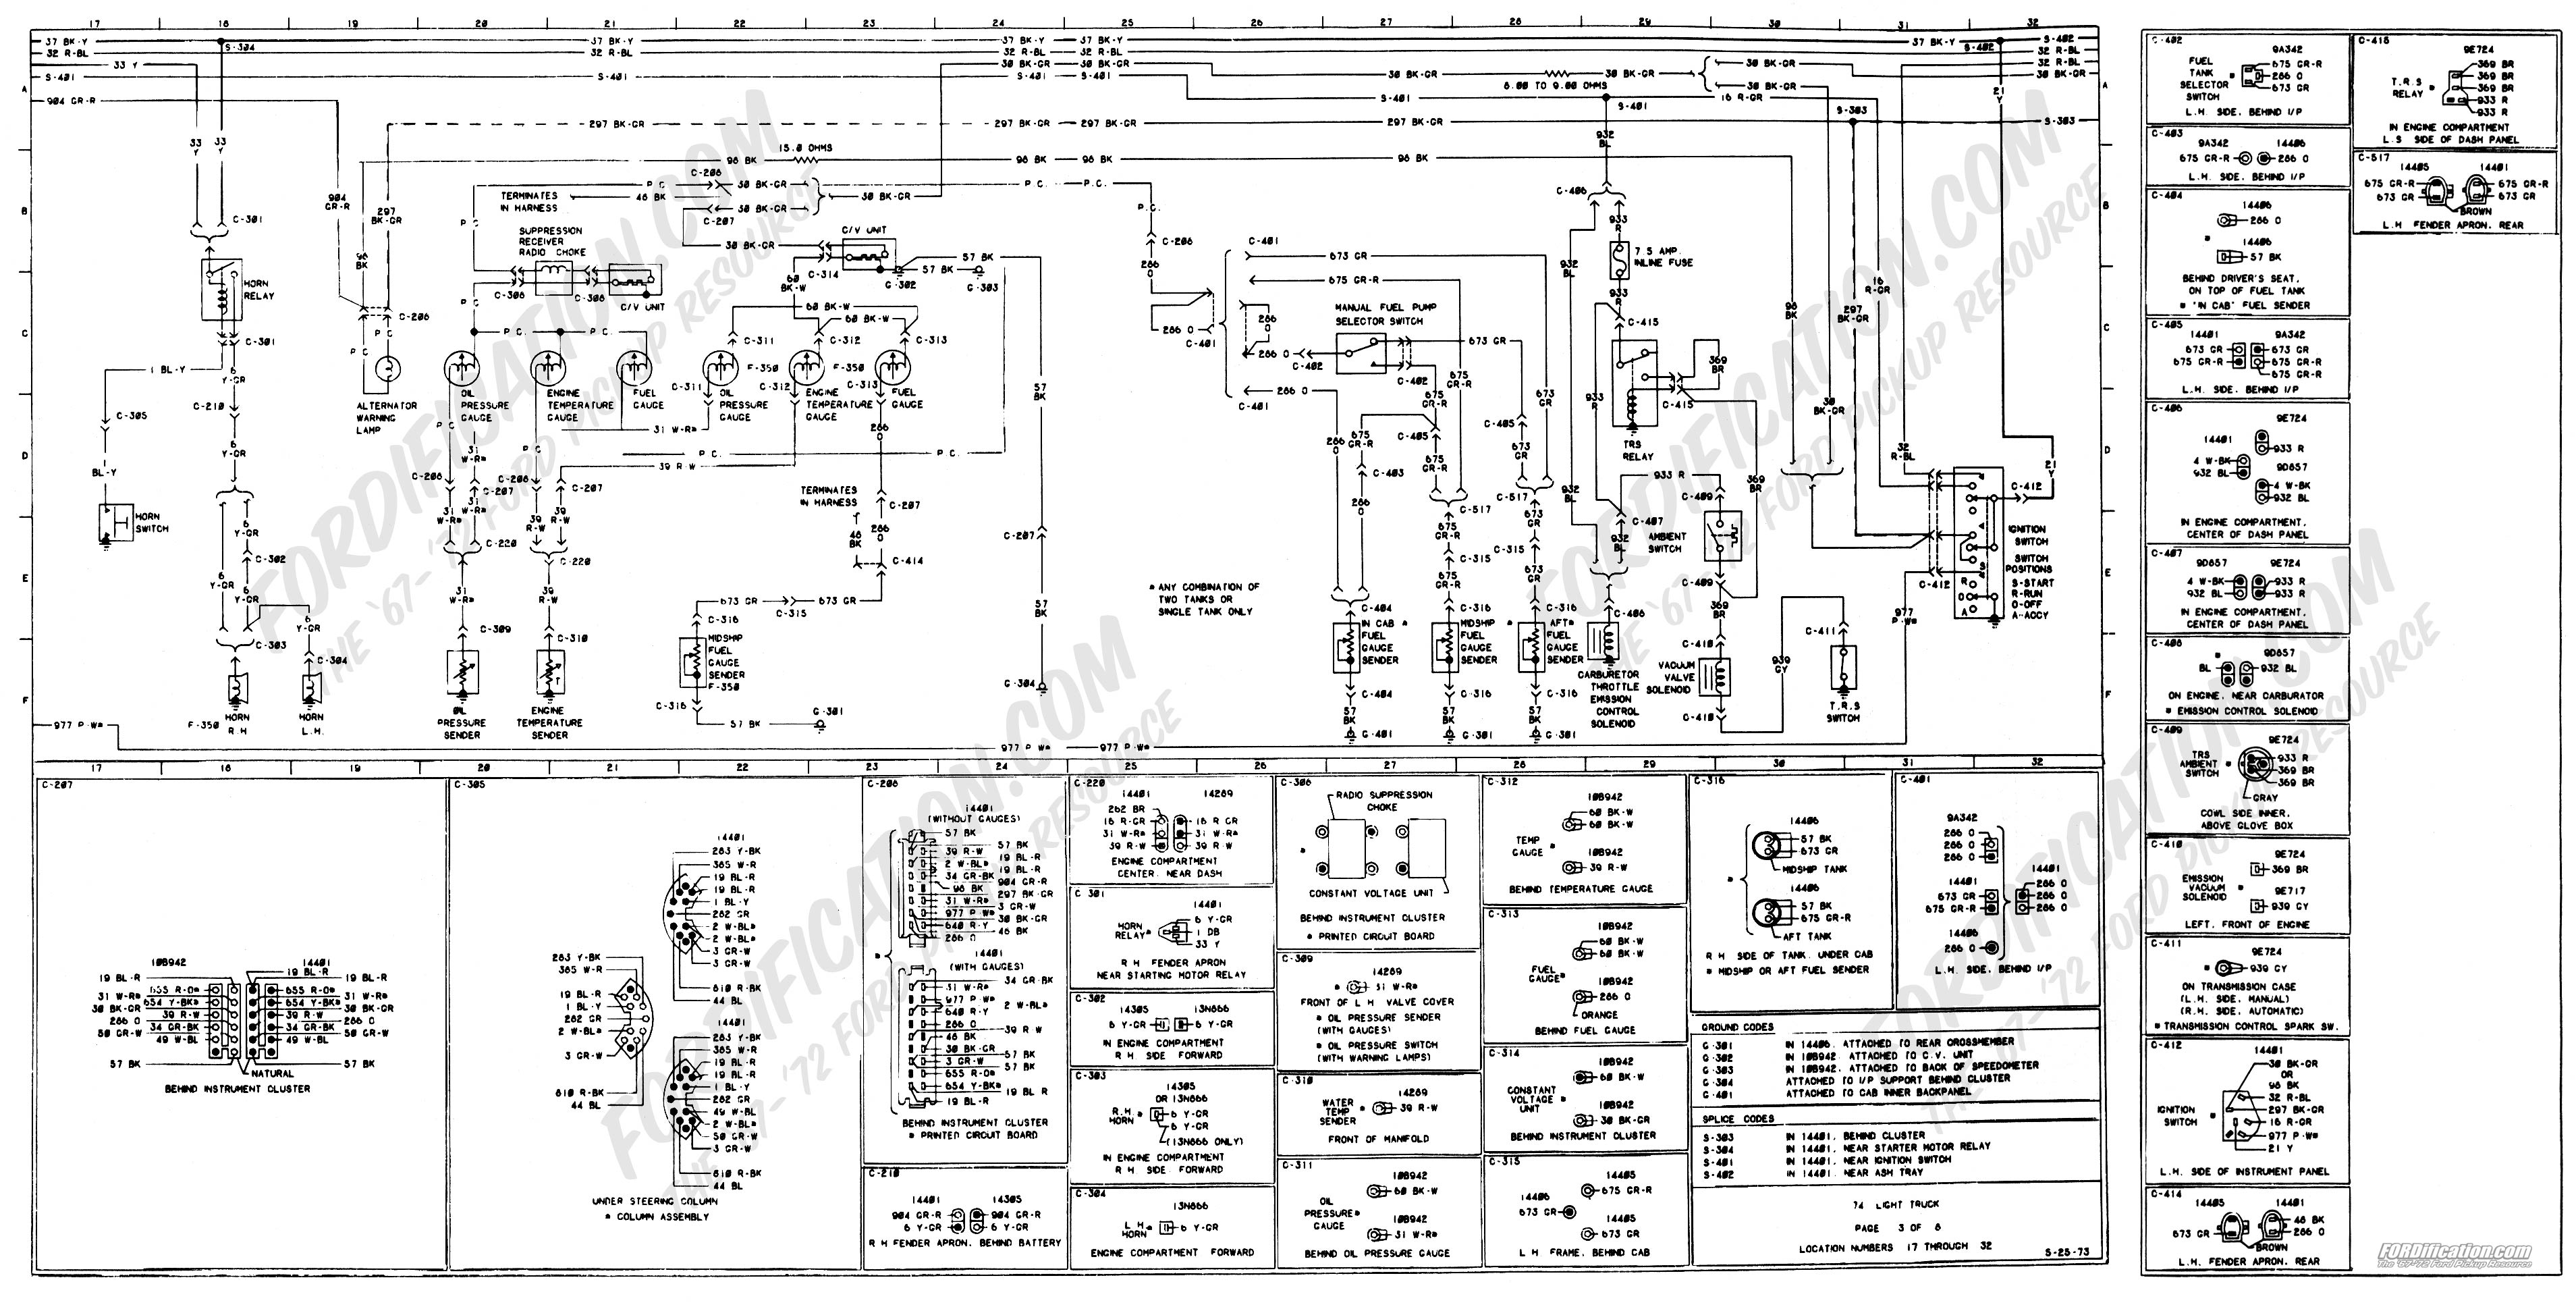 F350 Wiring Diagrams Basic Schematic Car Radio Harness Diagram 04 Yukon 1973 1979 Ford Truck Schematics Fordification Net